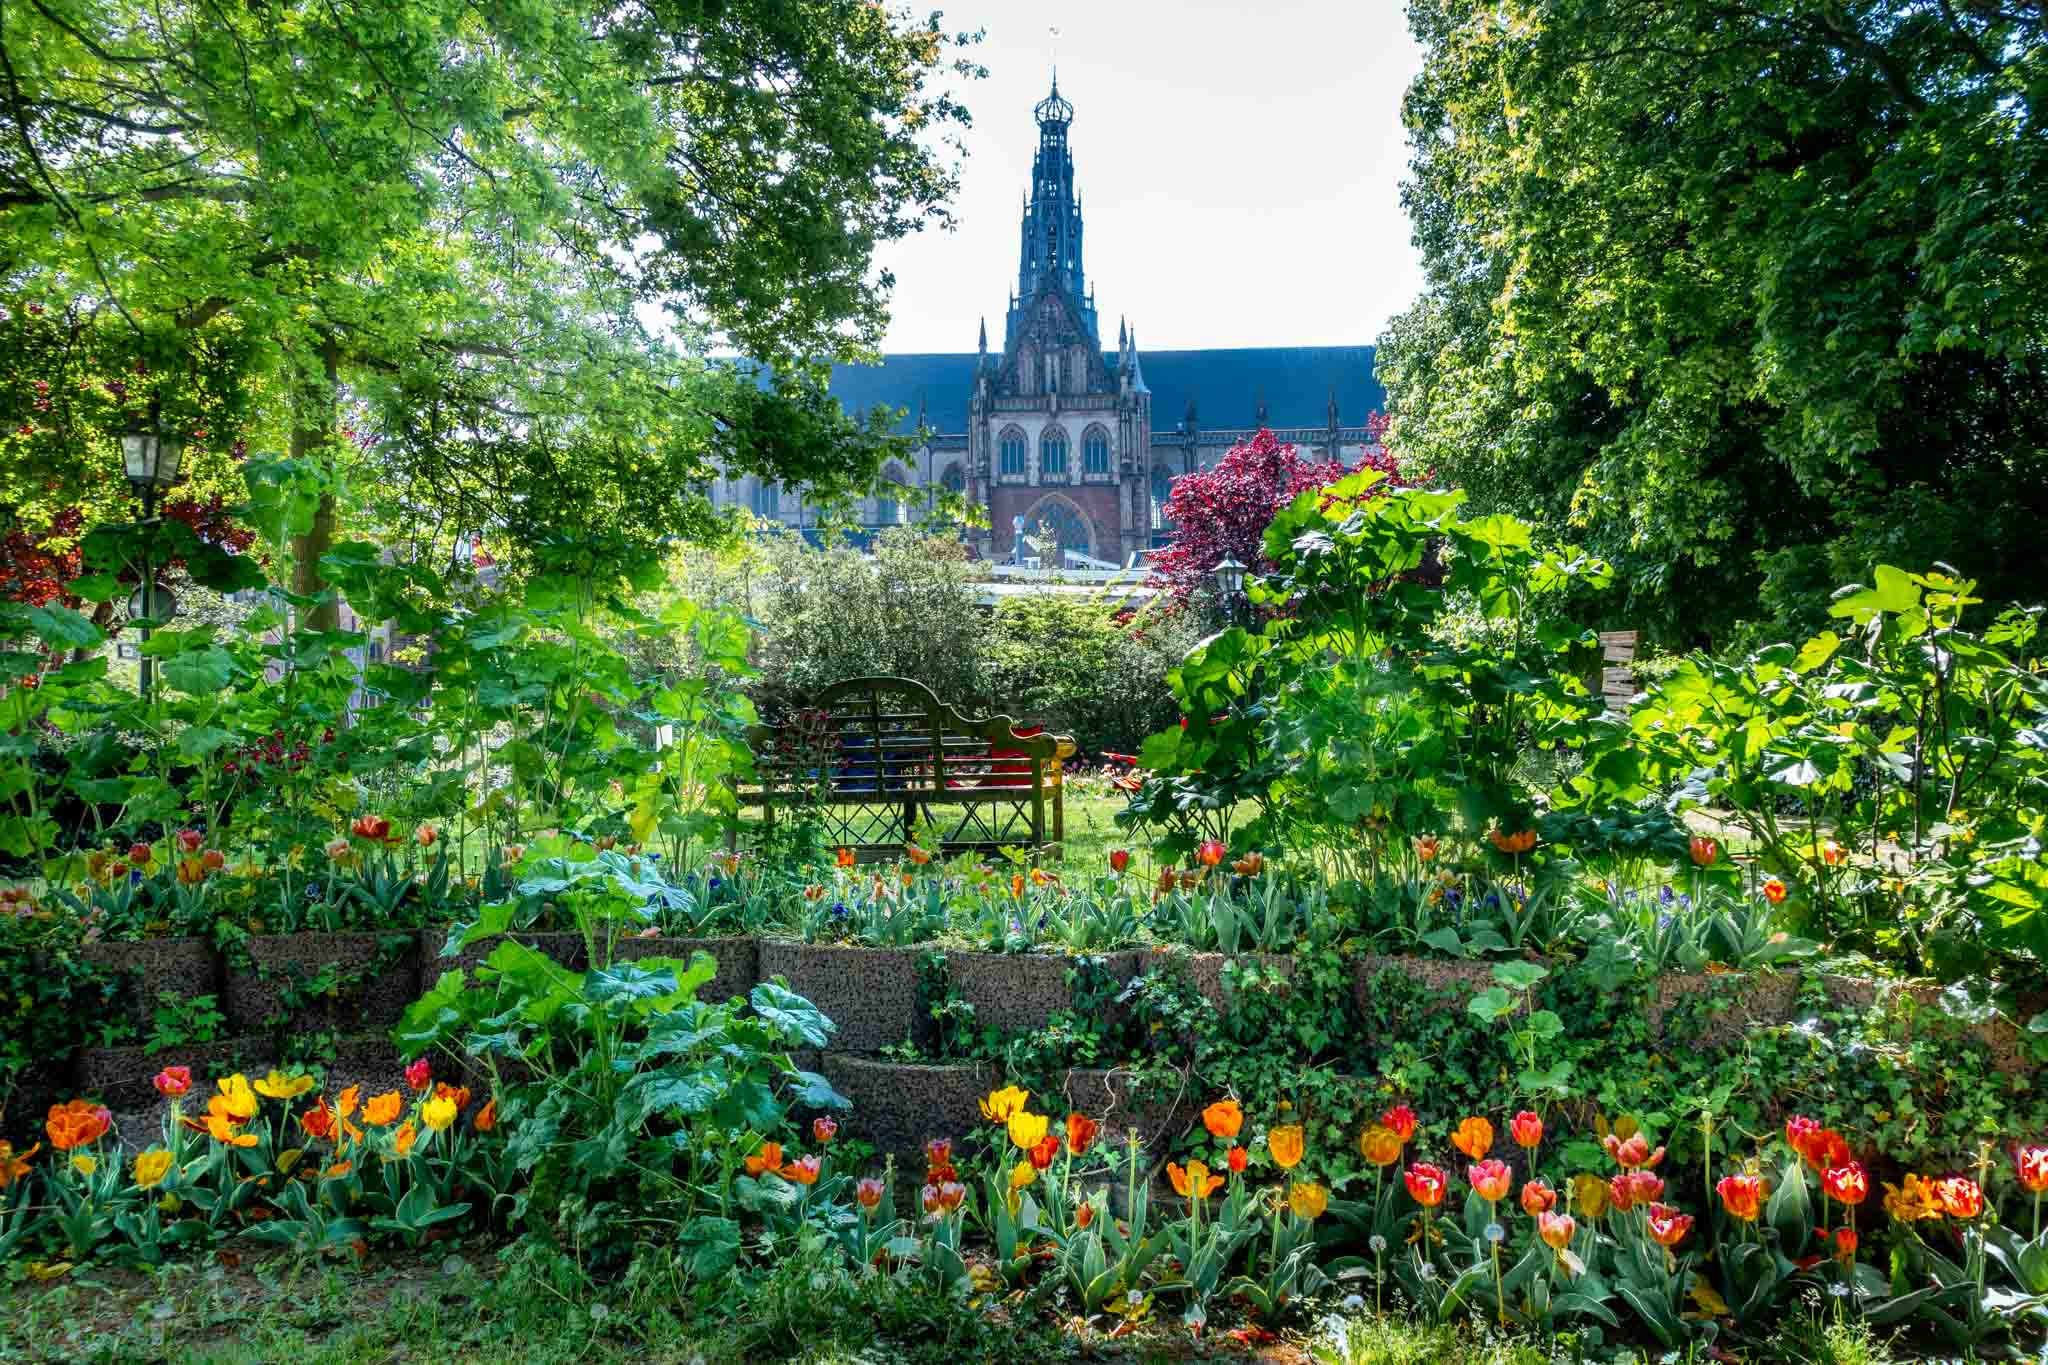 Garden with tulips and trees with St. Bavo Church in the background